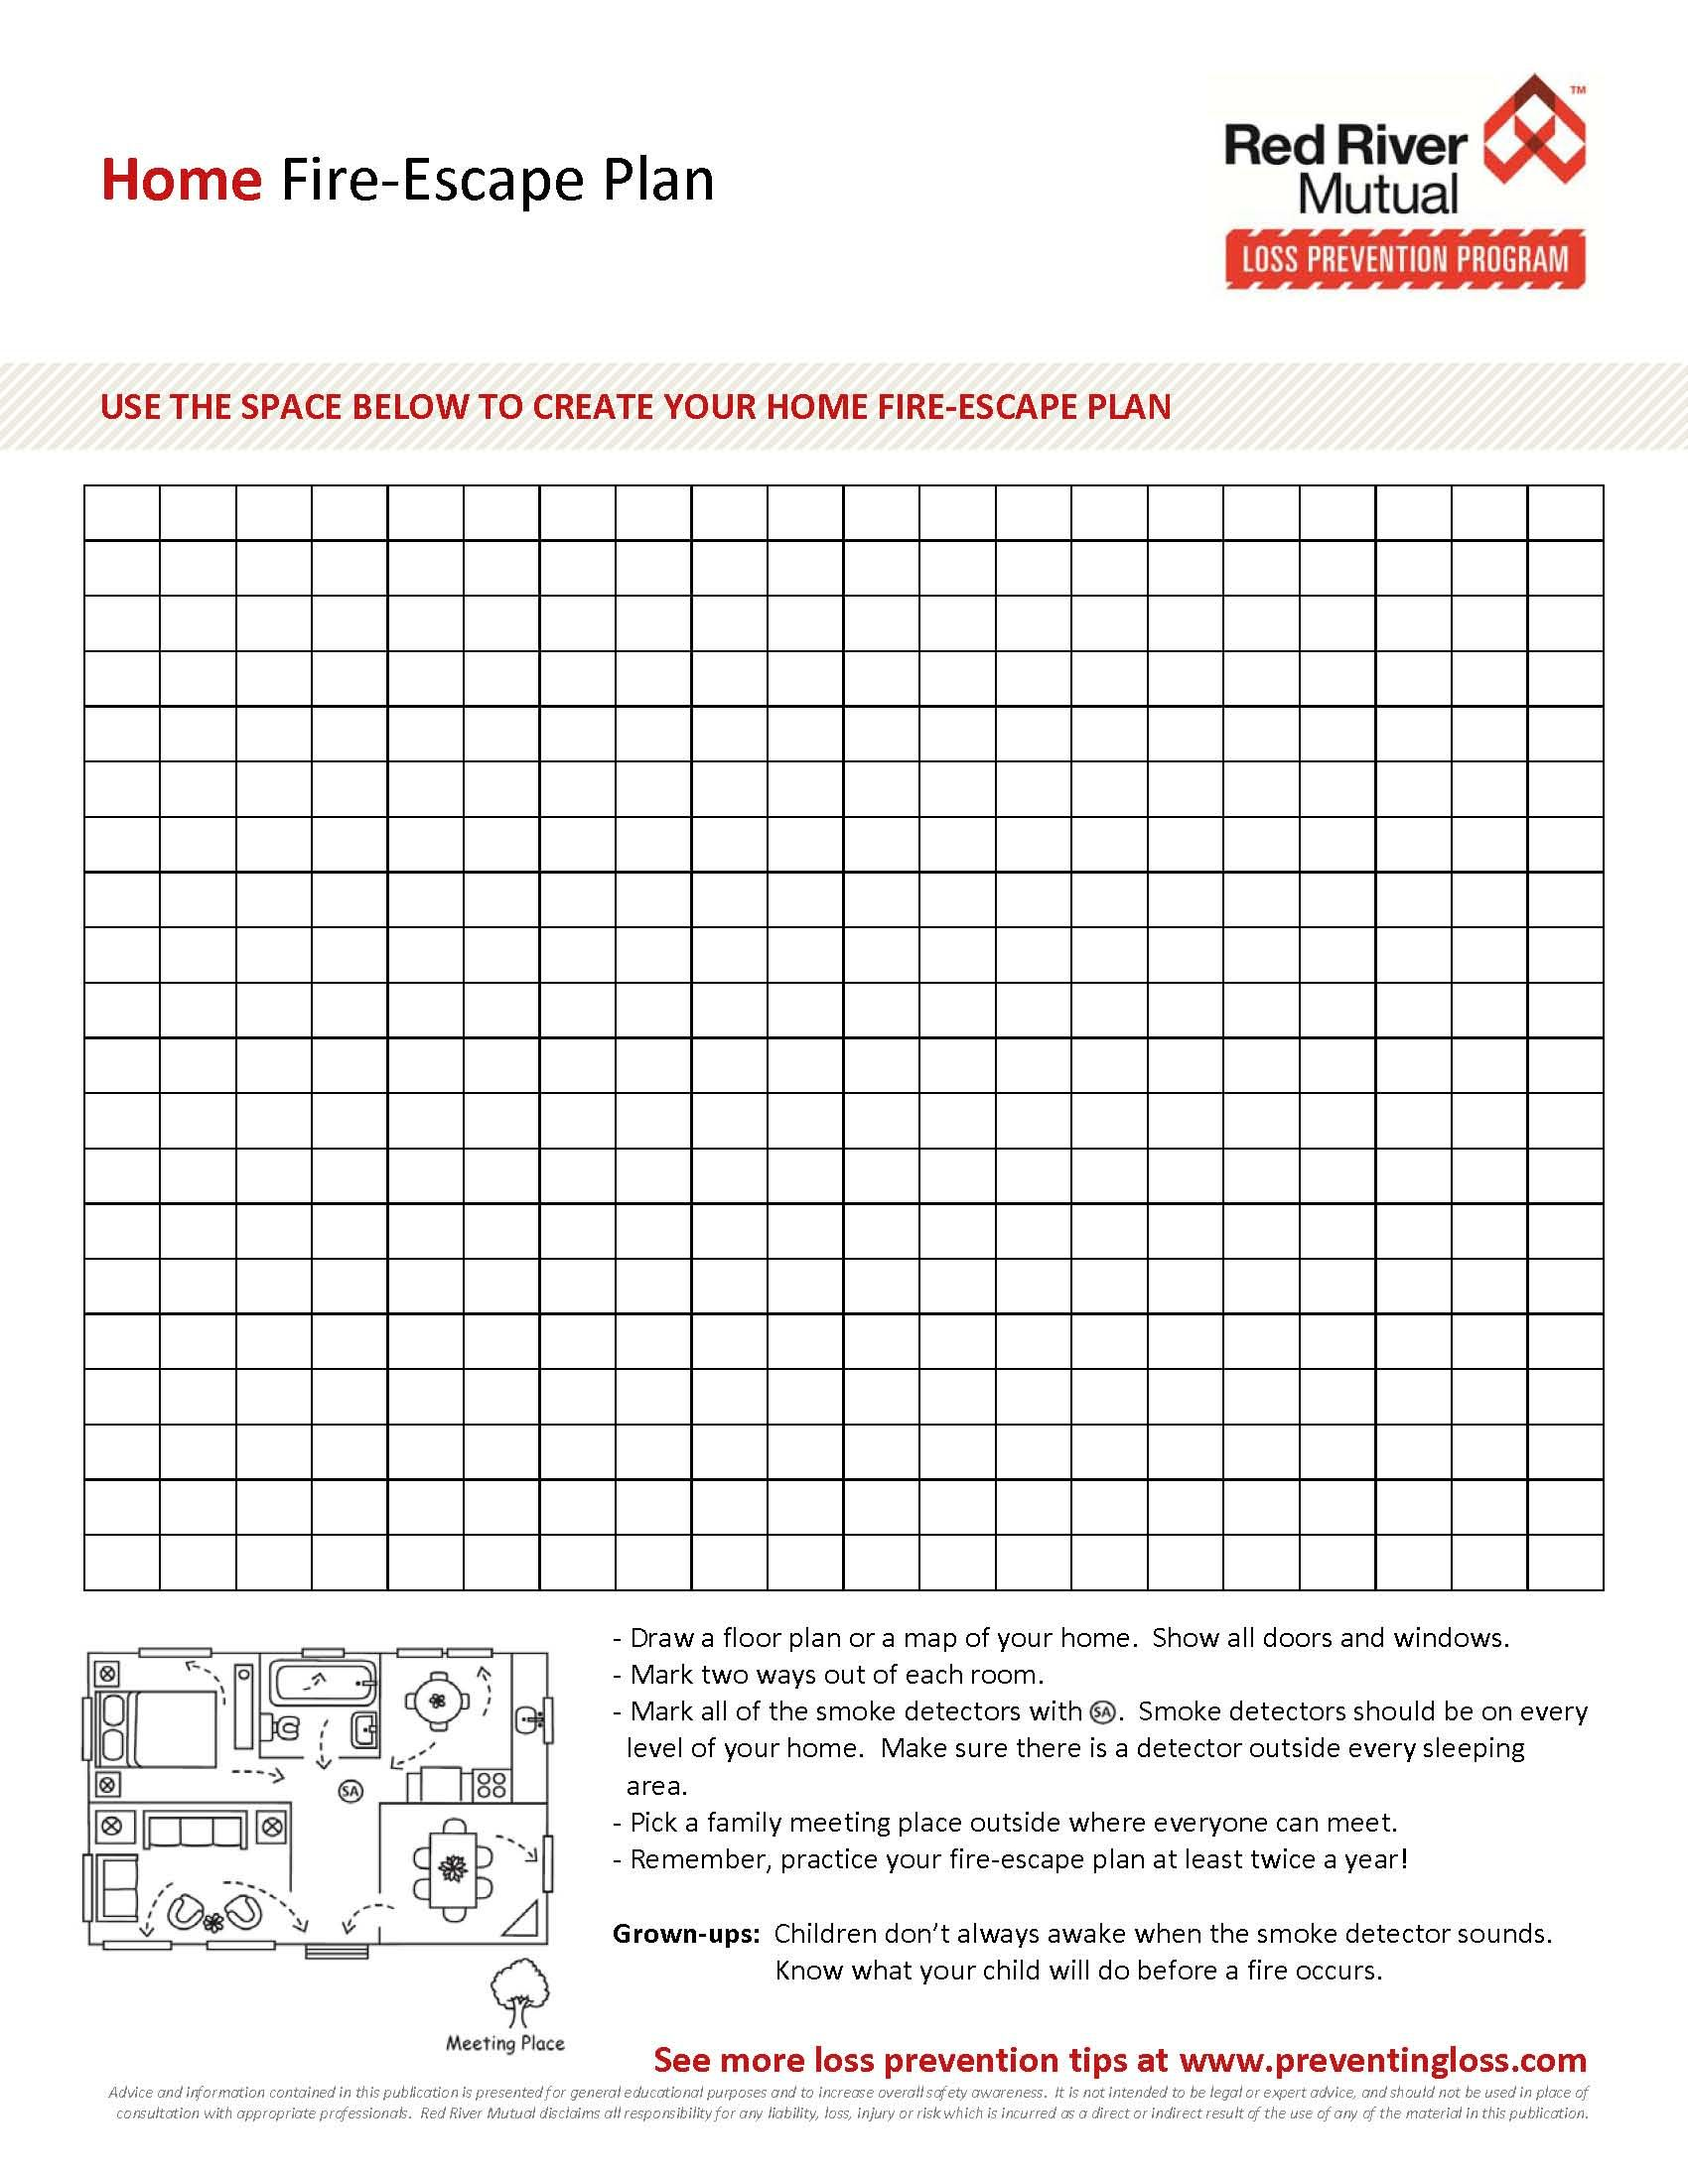 Fire escape planning tool create your home fire escape for House fire safety plan